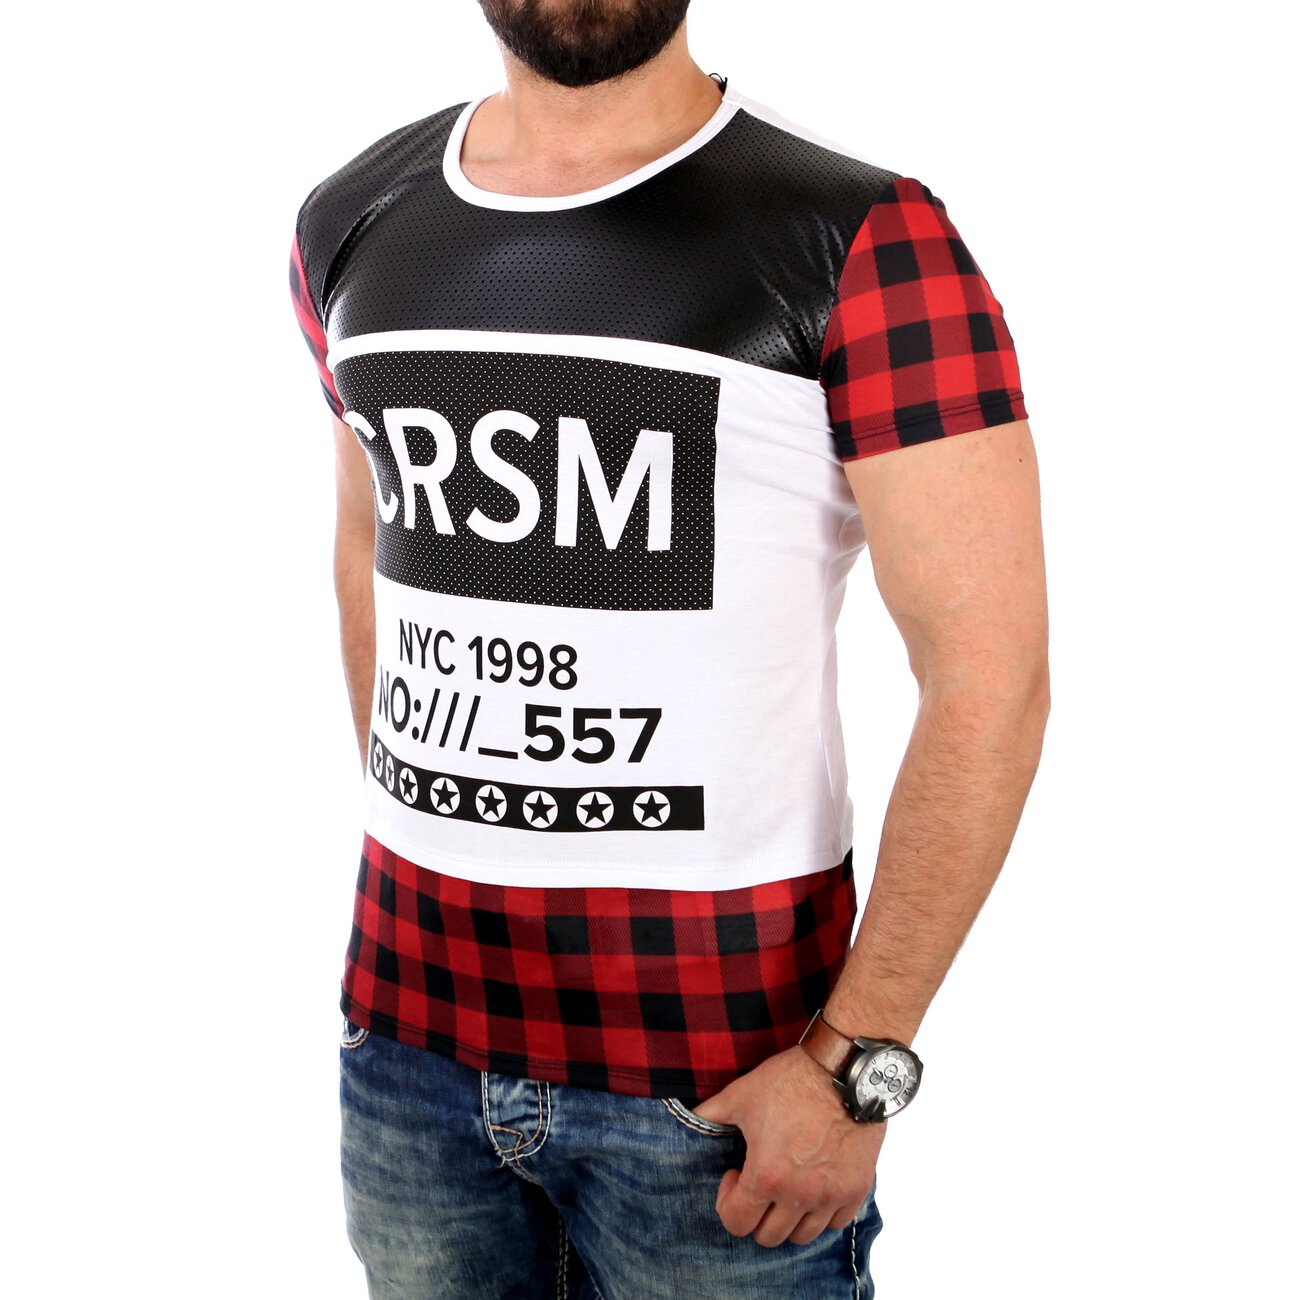 Carisma t shirt herren material mix flanell look shirt for T shirt printing local area